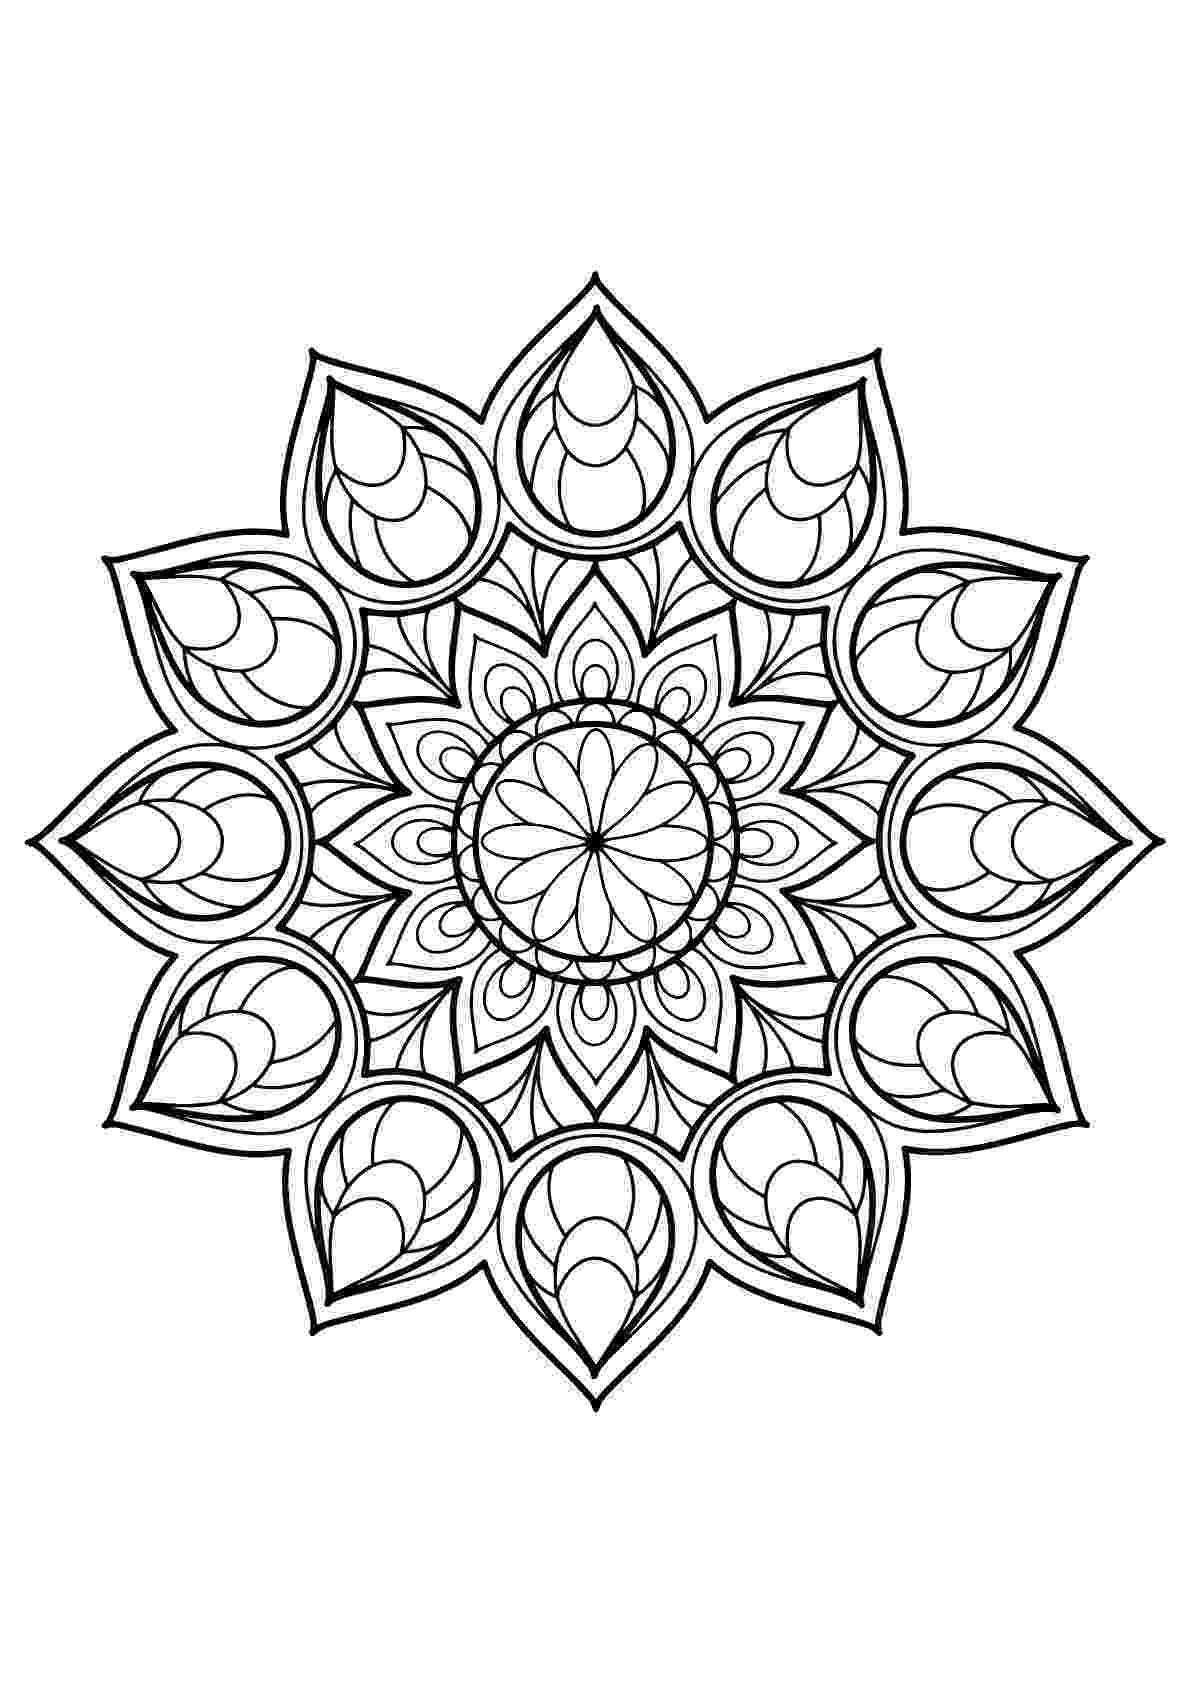 free printable mandalas for adults animal mandala coloring pages to download and print for free free mandalas for adults printable